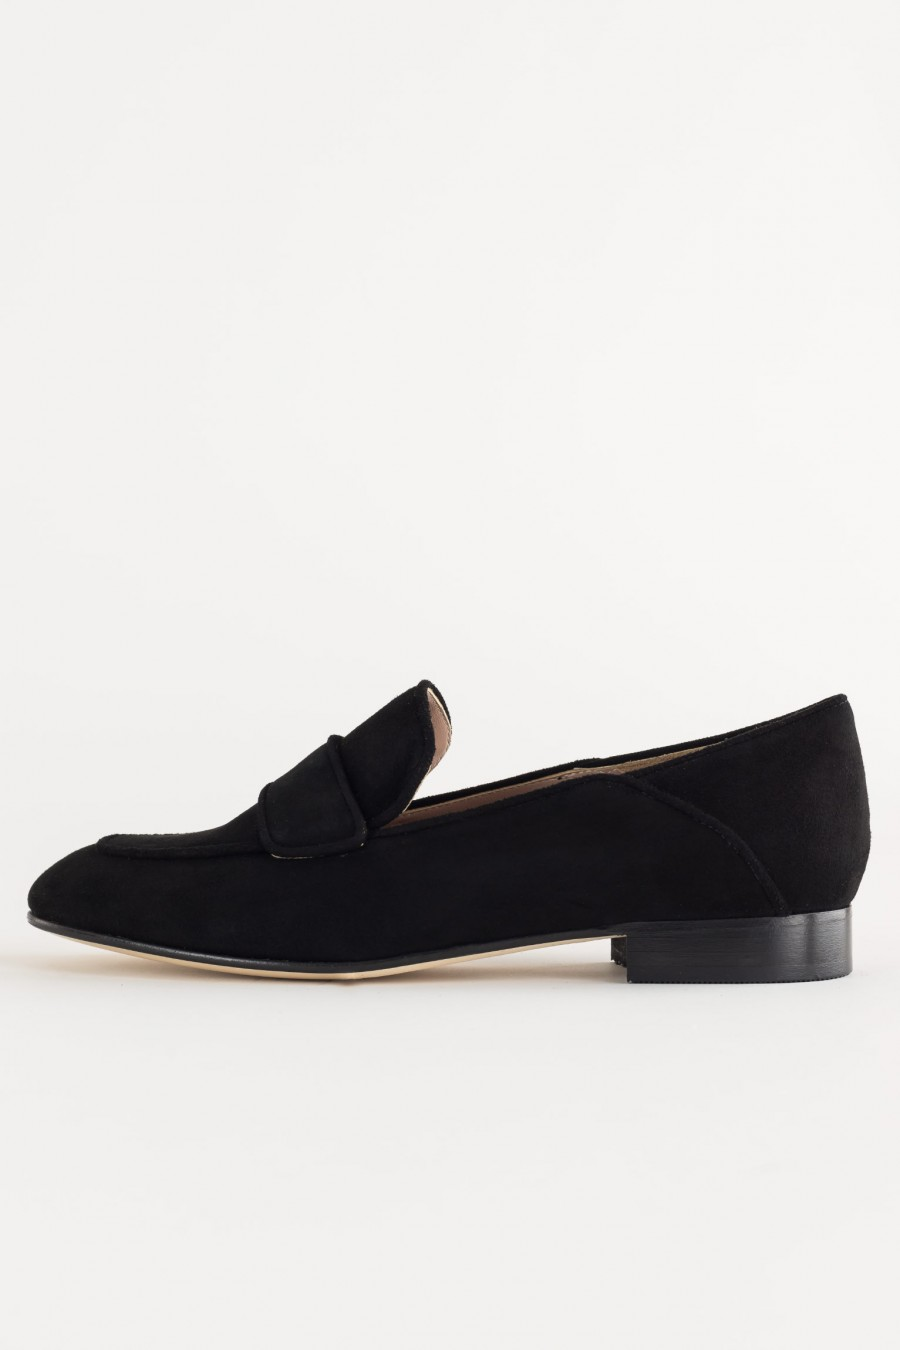 Lazzari black suede loafers